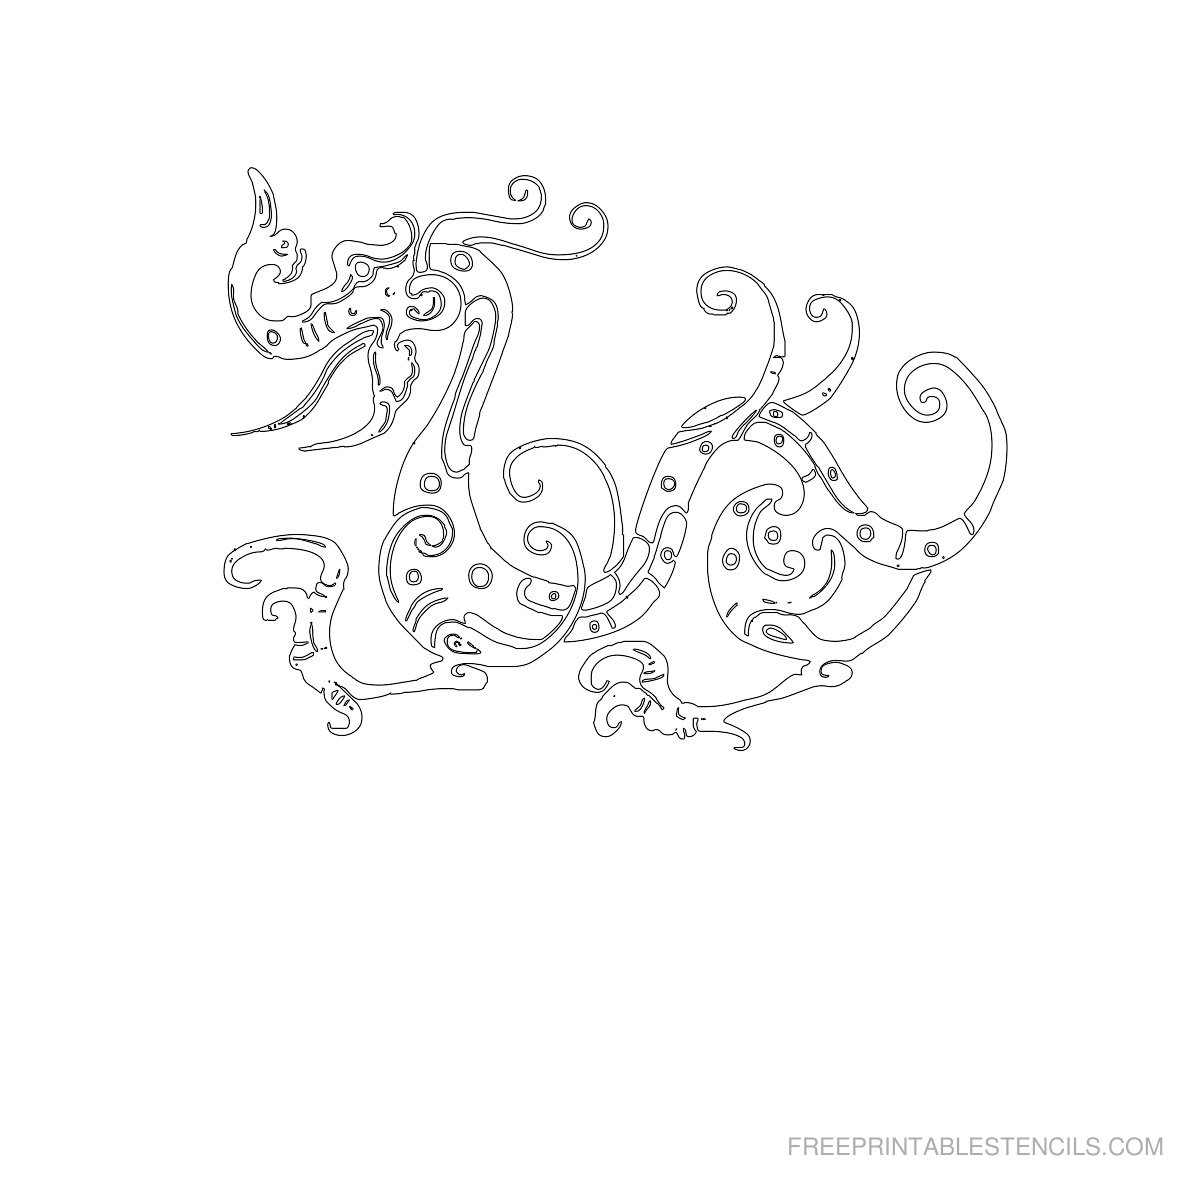 Dragon Stencils Printable Pictures | Free Printable Stencils - Free Printable Dragon Stencils